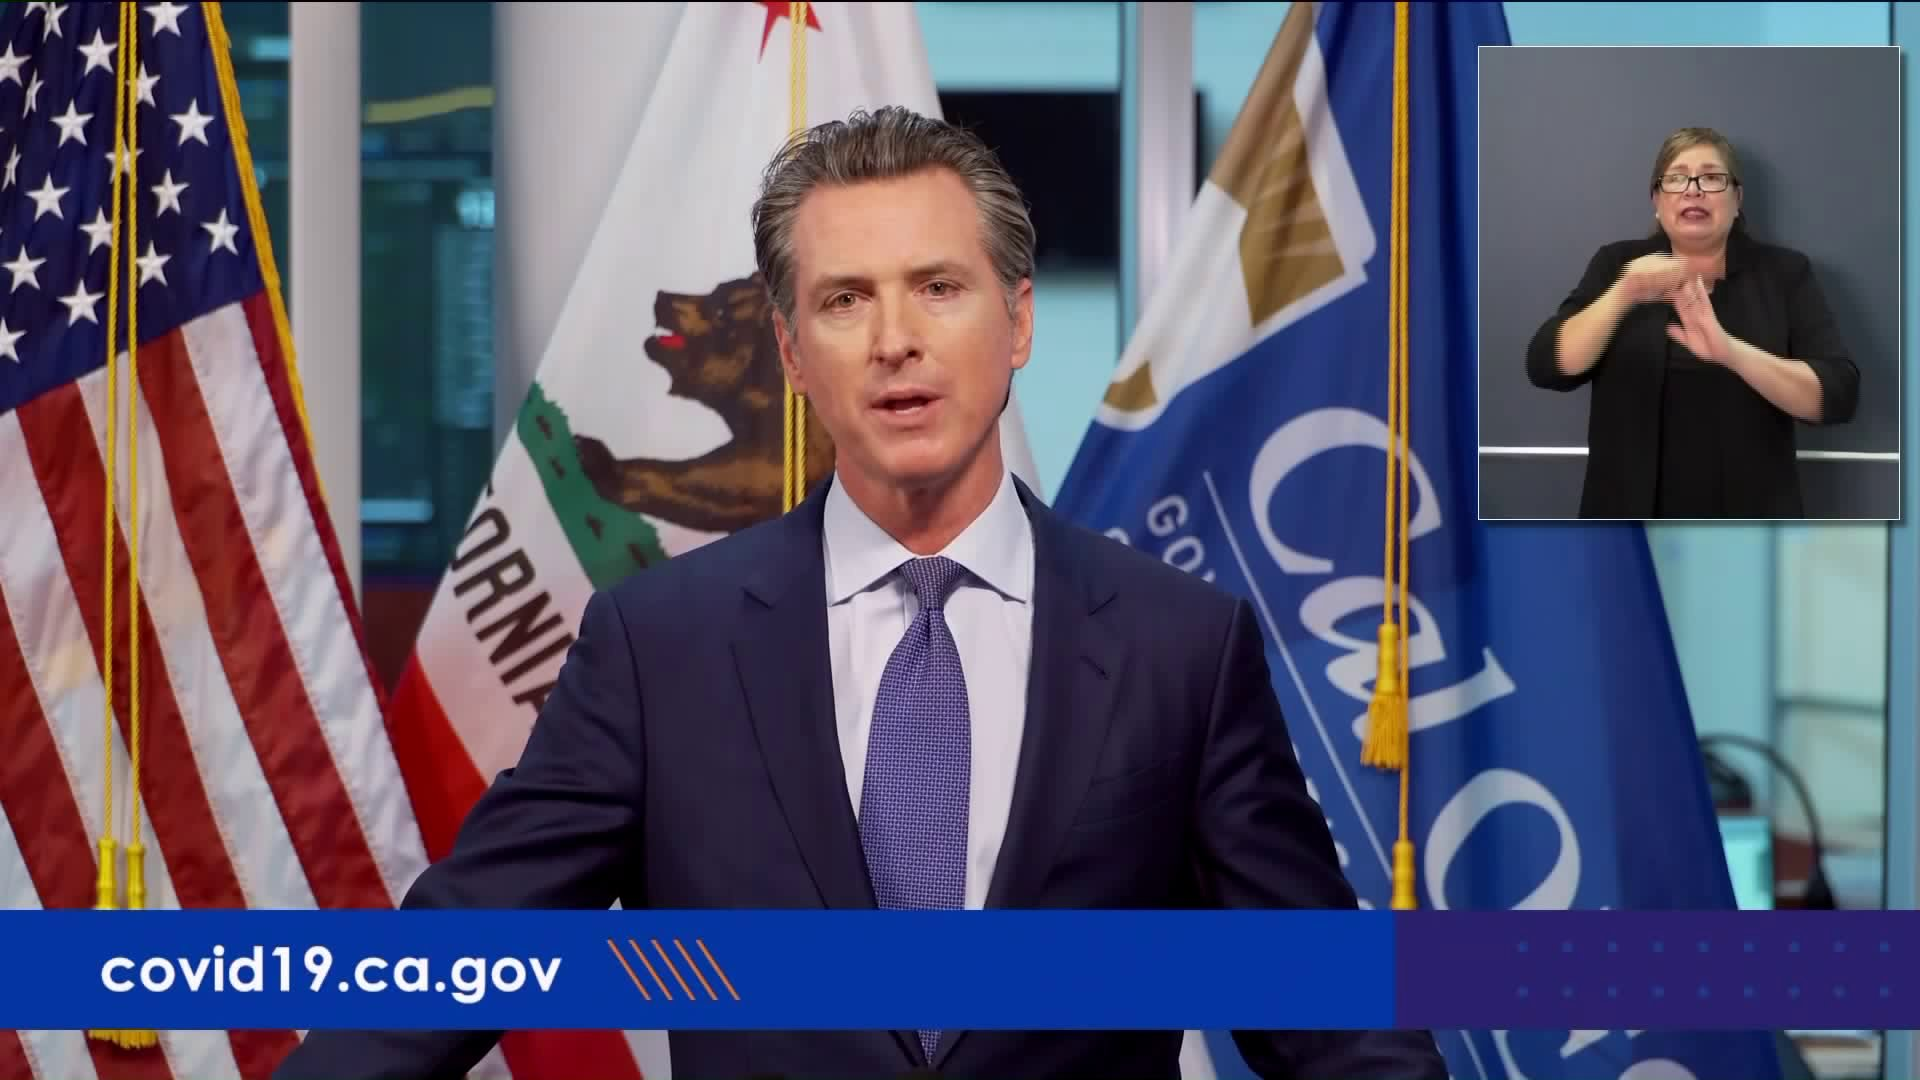 Gov. Gavin Newsom speaks at a news conference on March 31, 2020. (Pool)